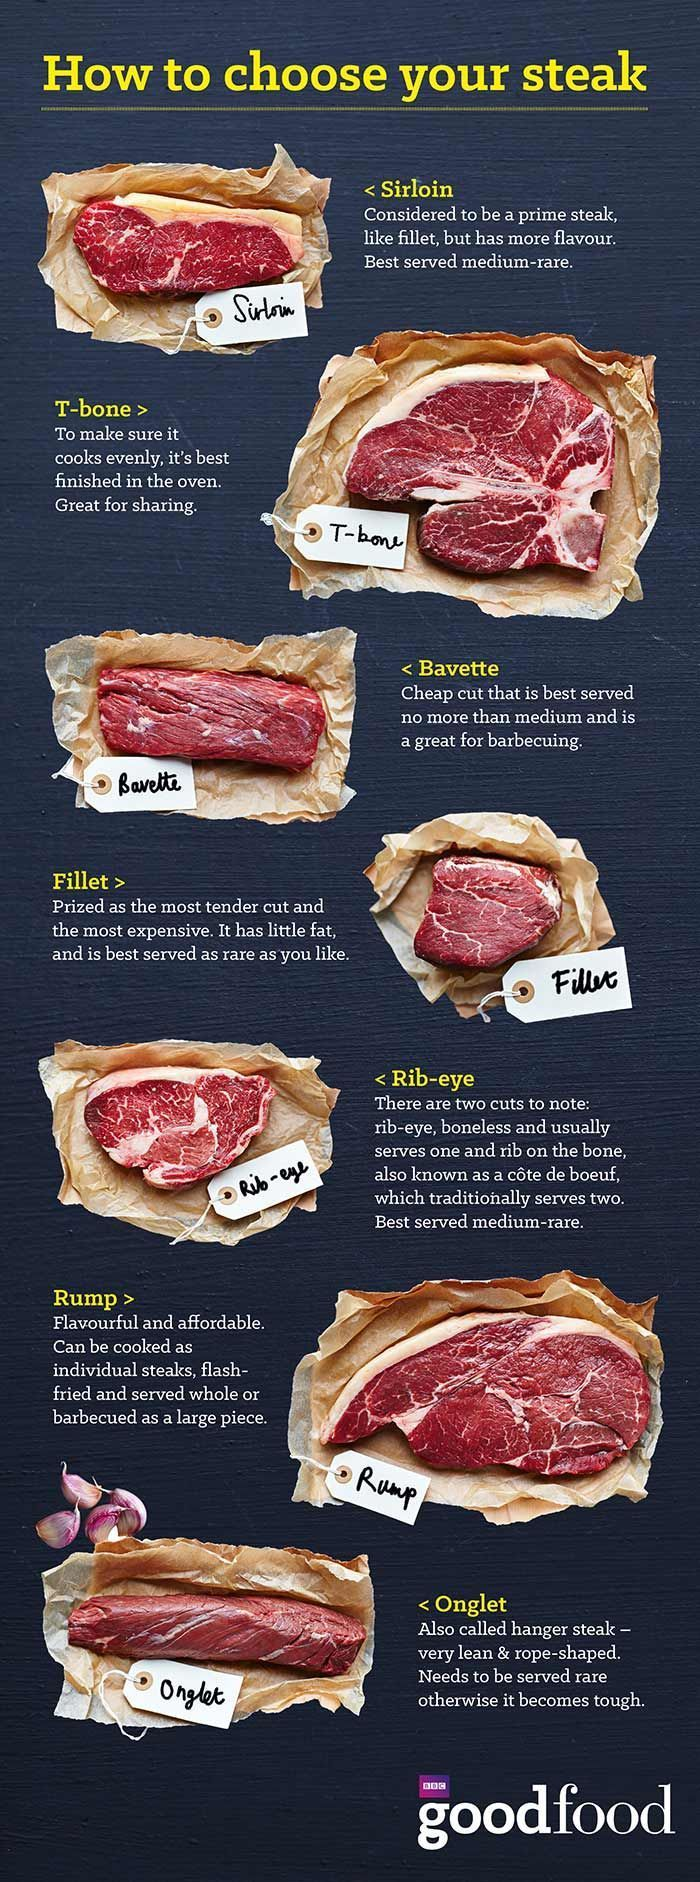 How To Choose Your Steak Infographic